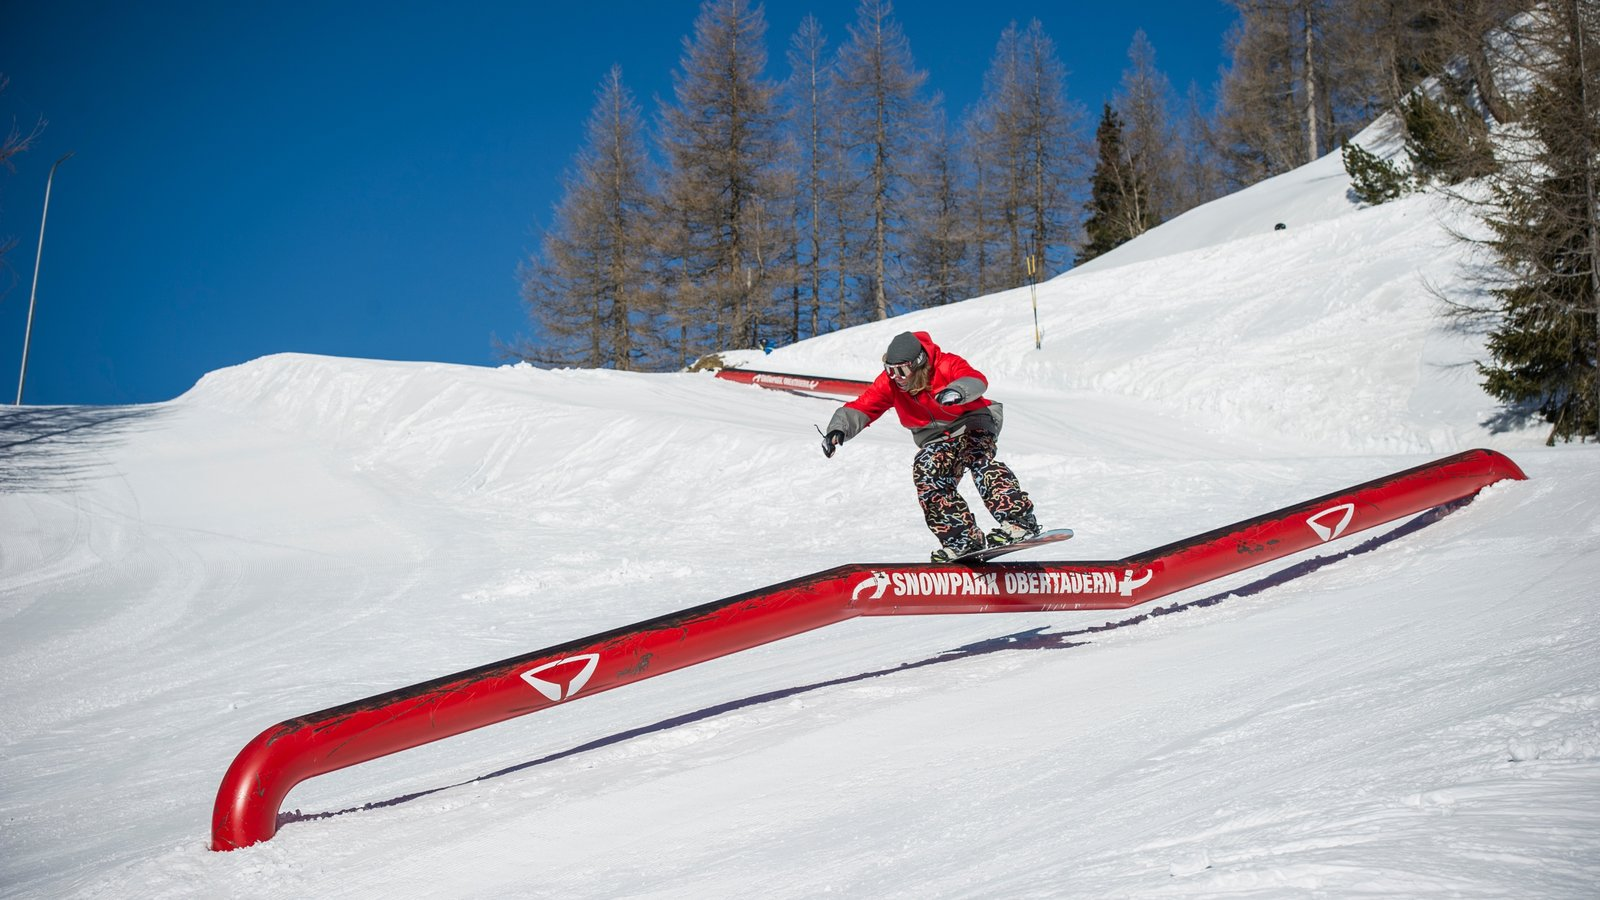 Obertauern showing snow, snow boarding and mountains